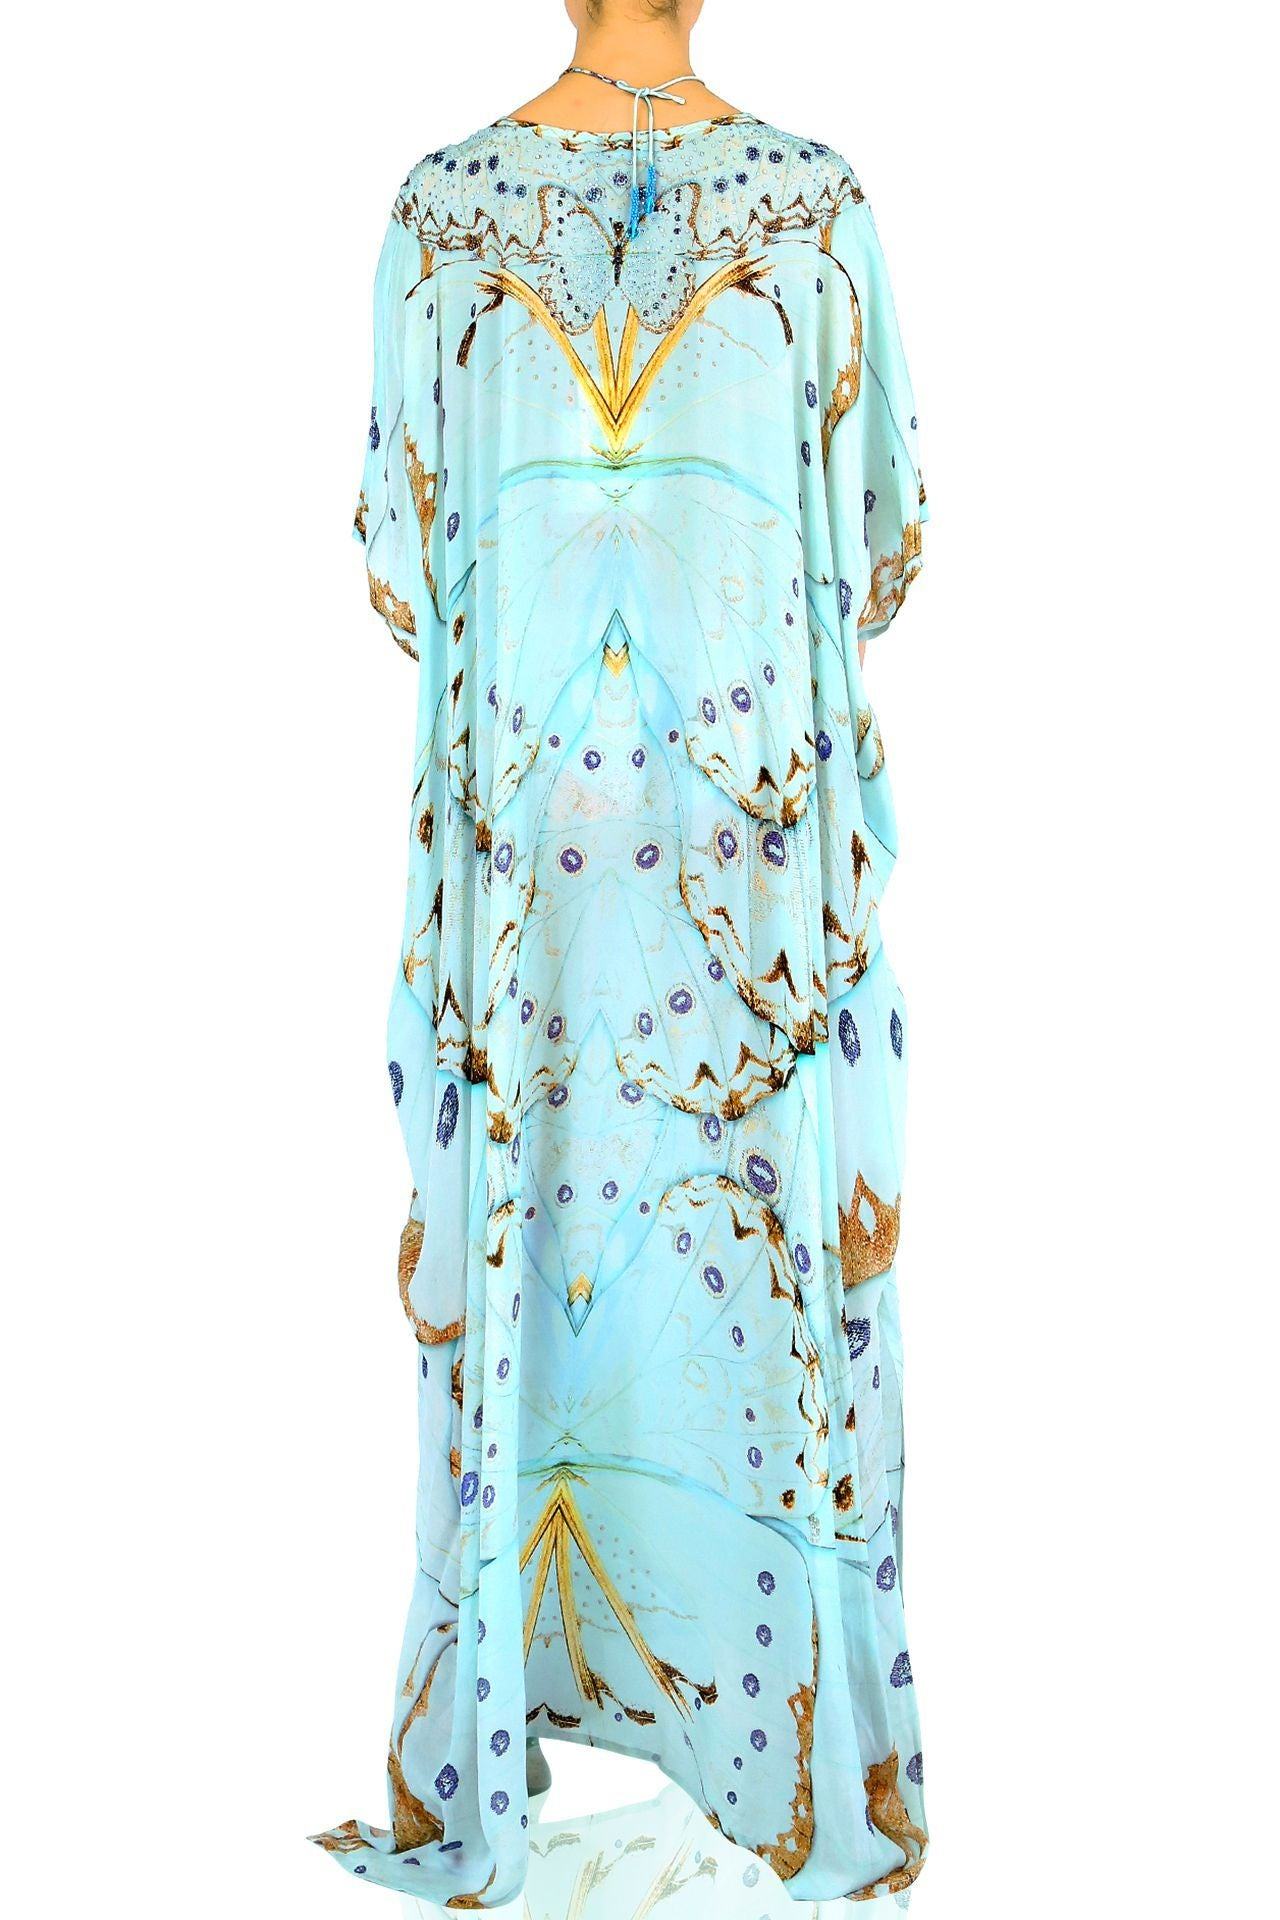 V-Neck Kaftan in Mint